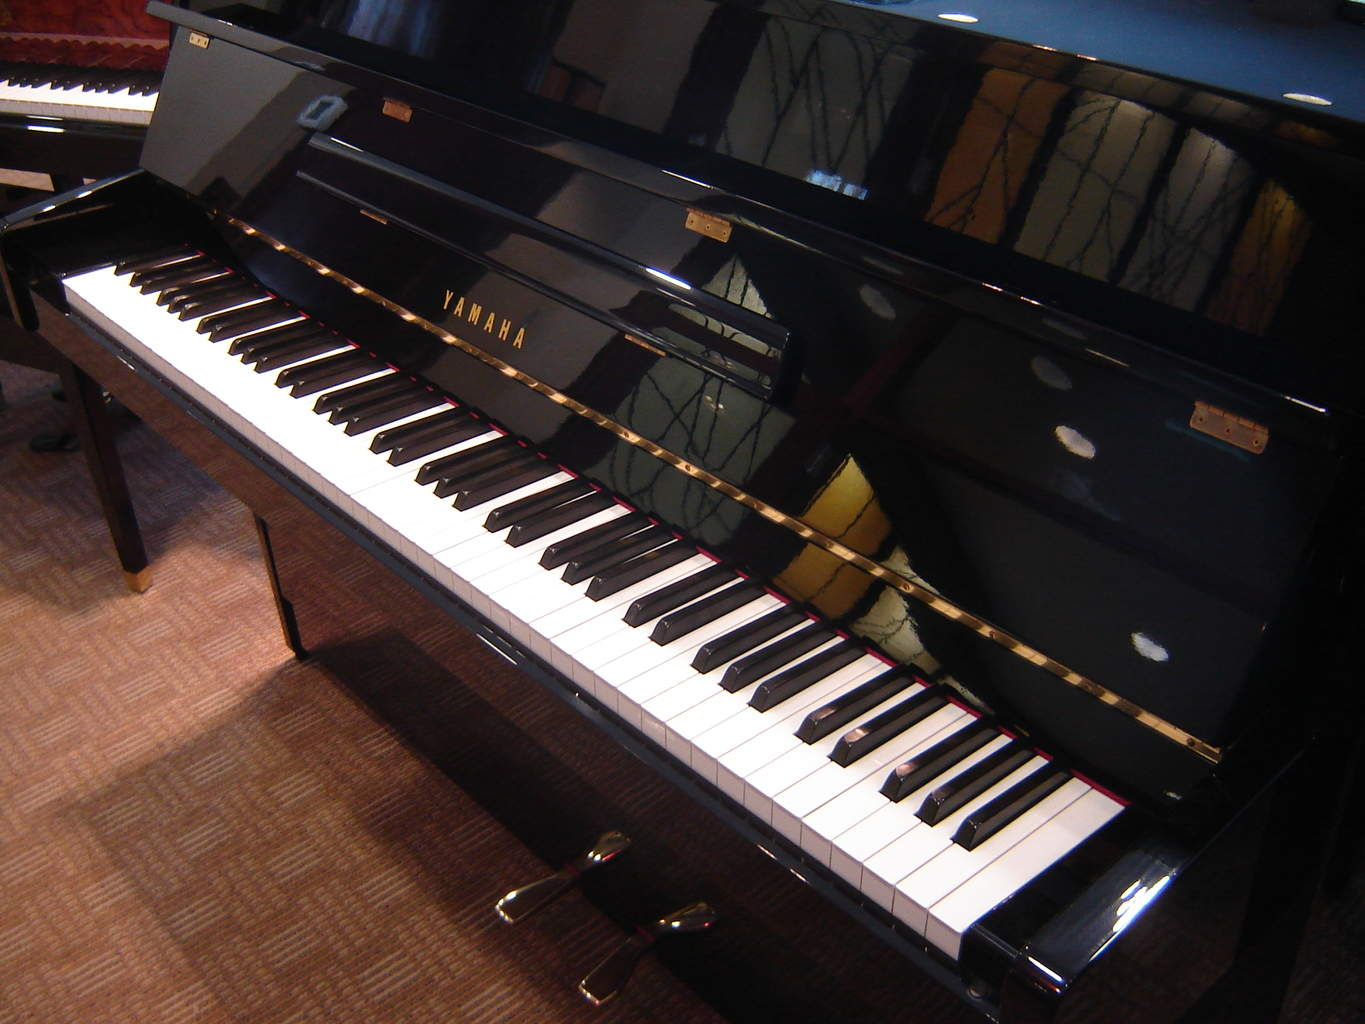 Yamaha upright piano c109 b1 model 3195 built in 2004 for Yamaha music school locations